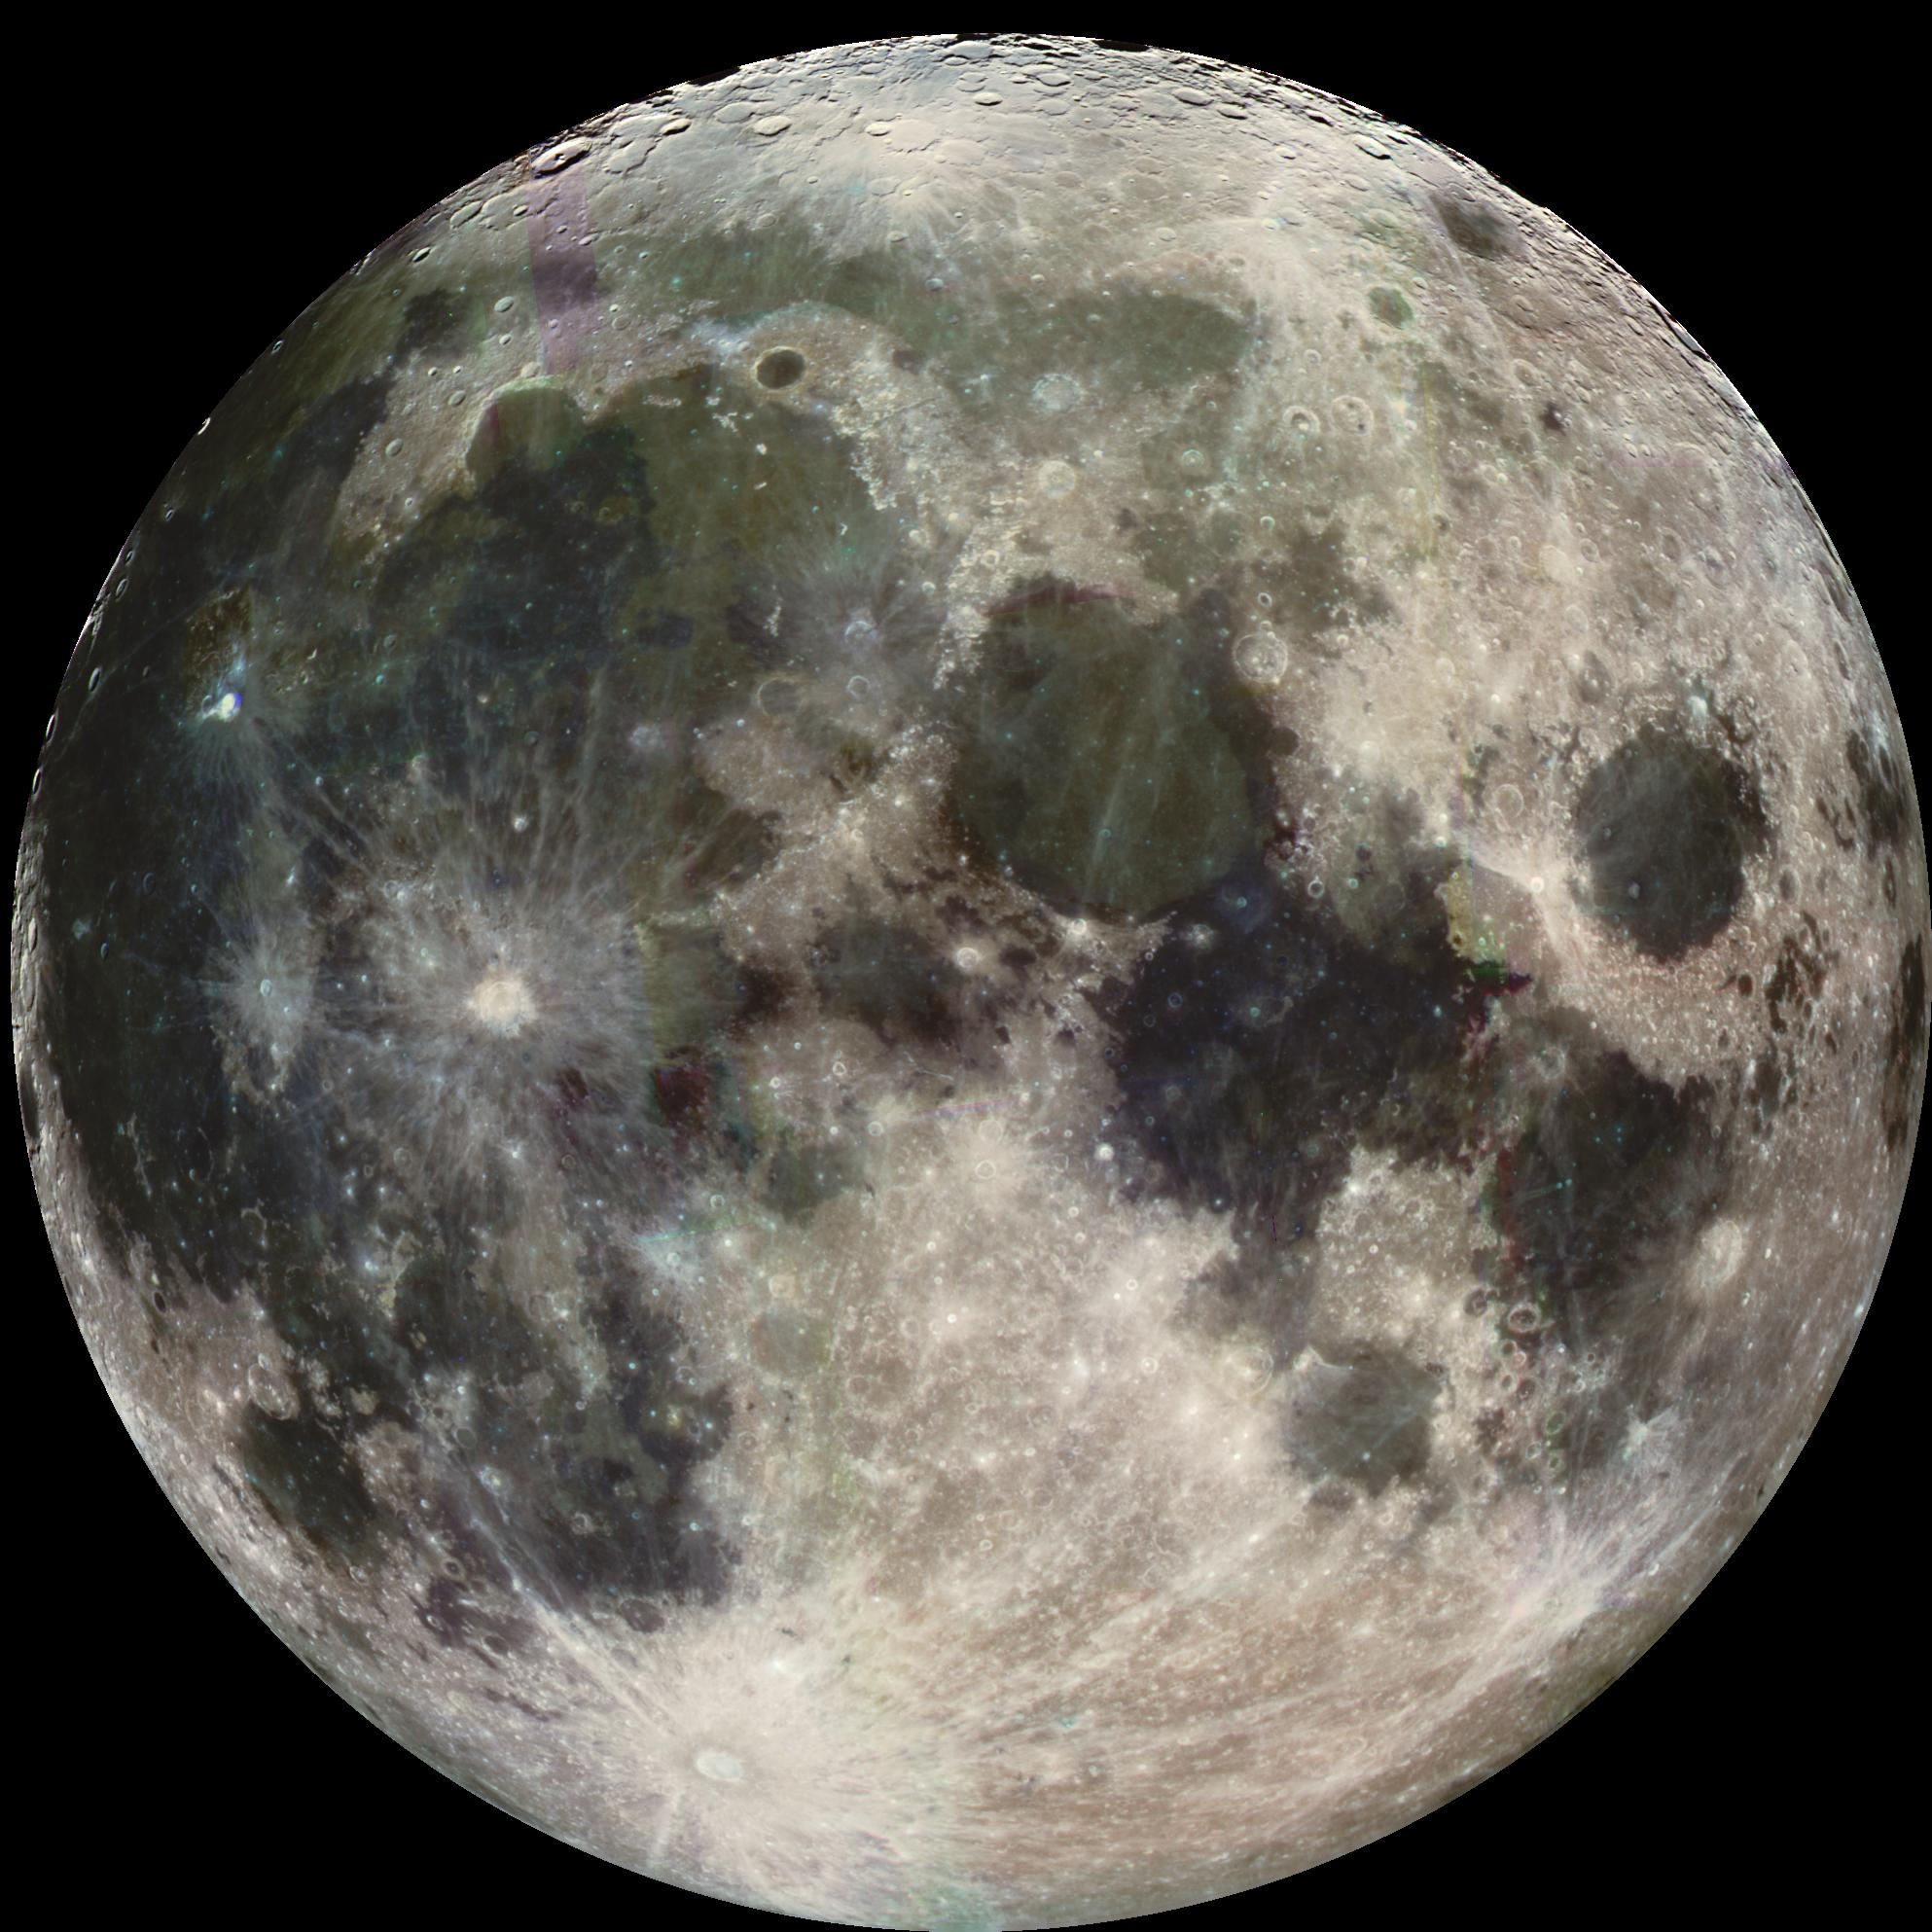 Image of full moon